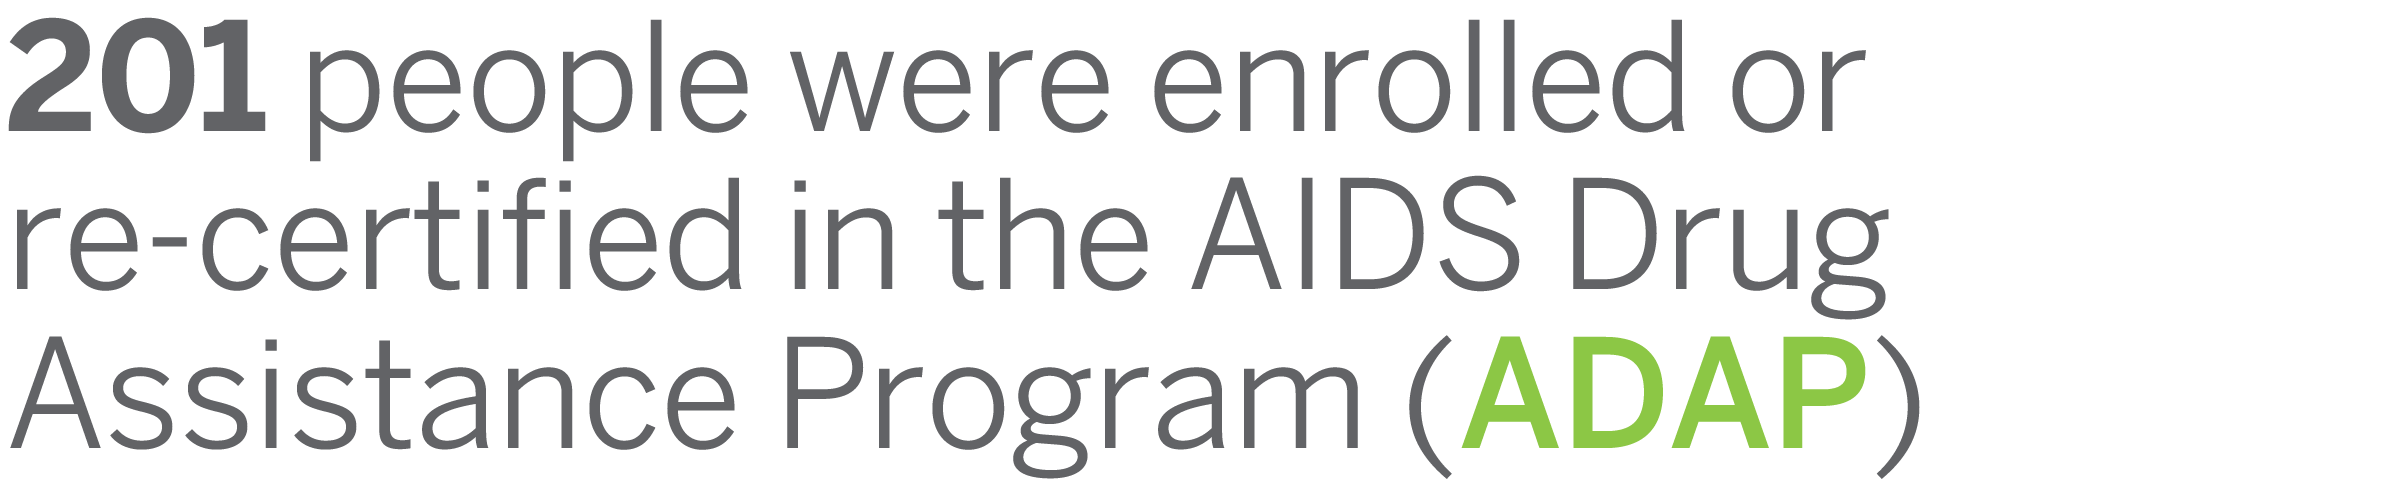 201 people were enrolled or re-certified in the AIDS Drug Assistance Program (ADAP)